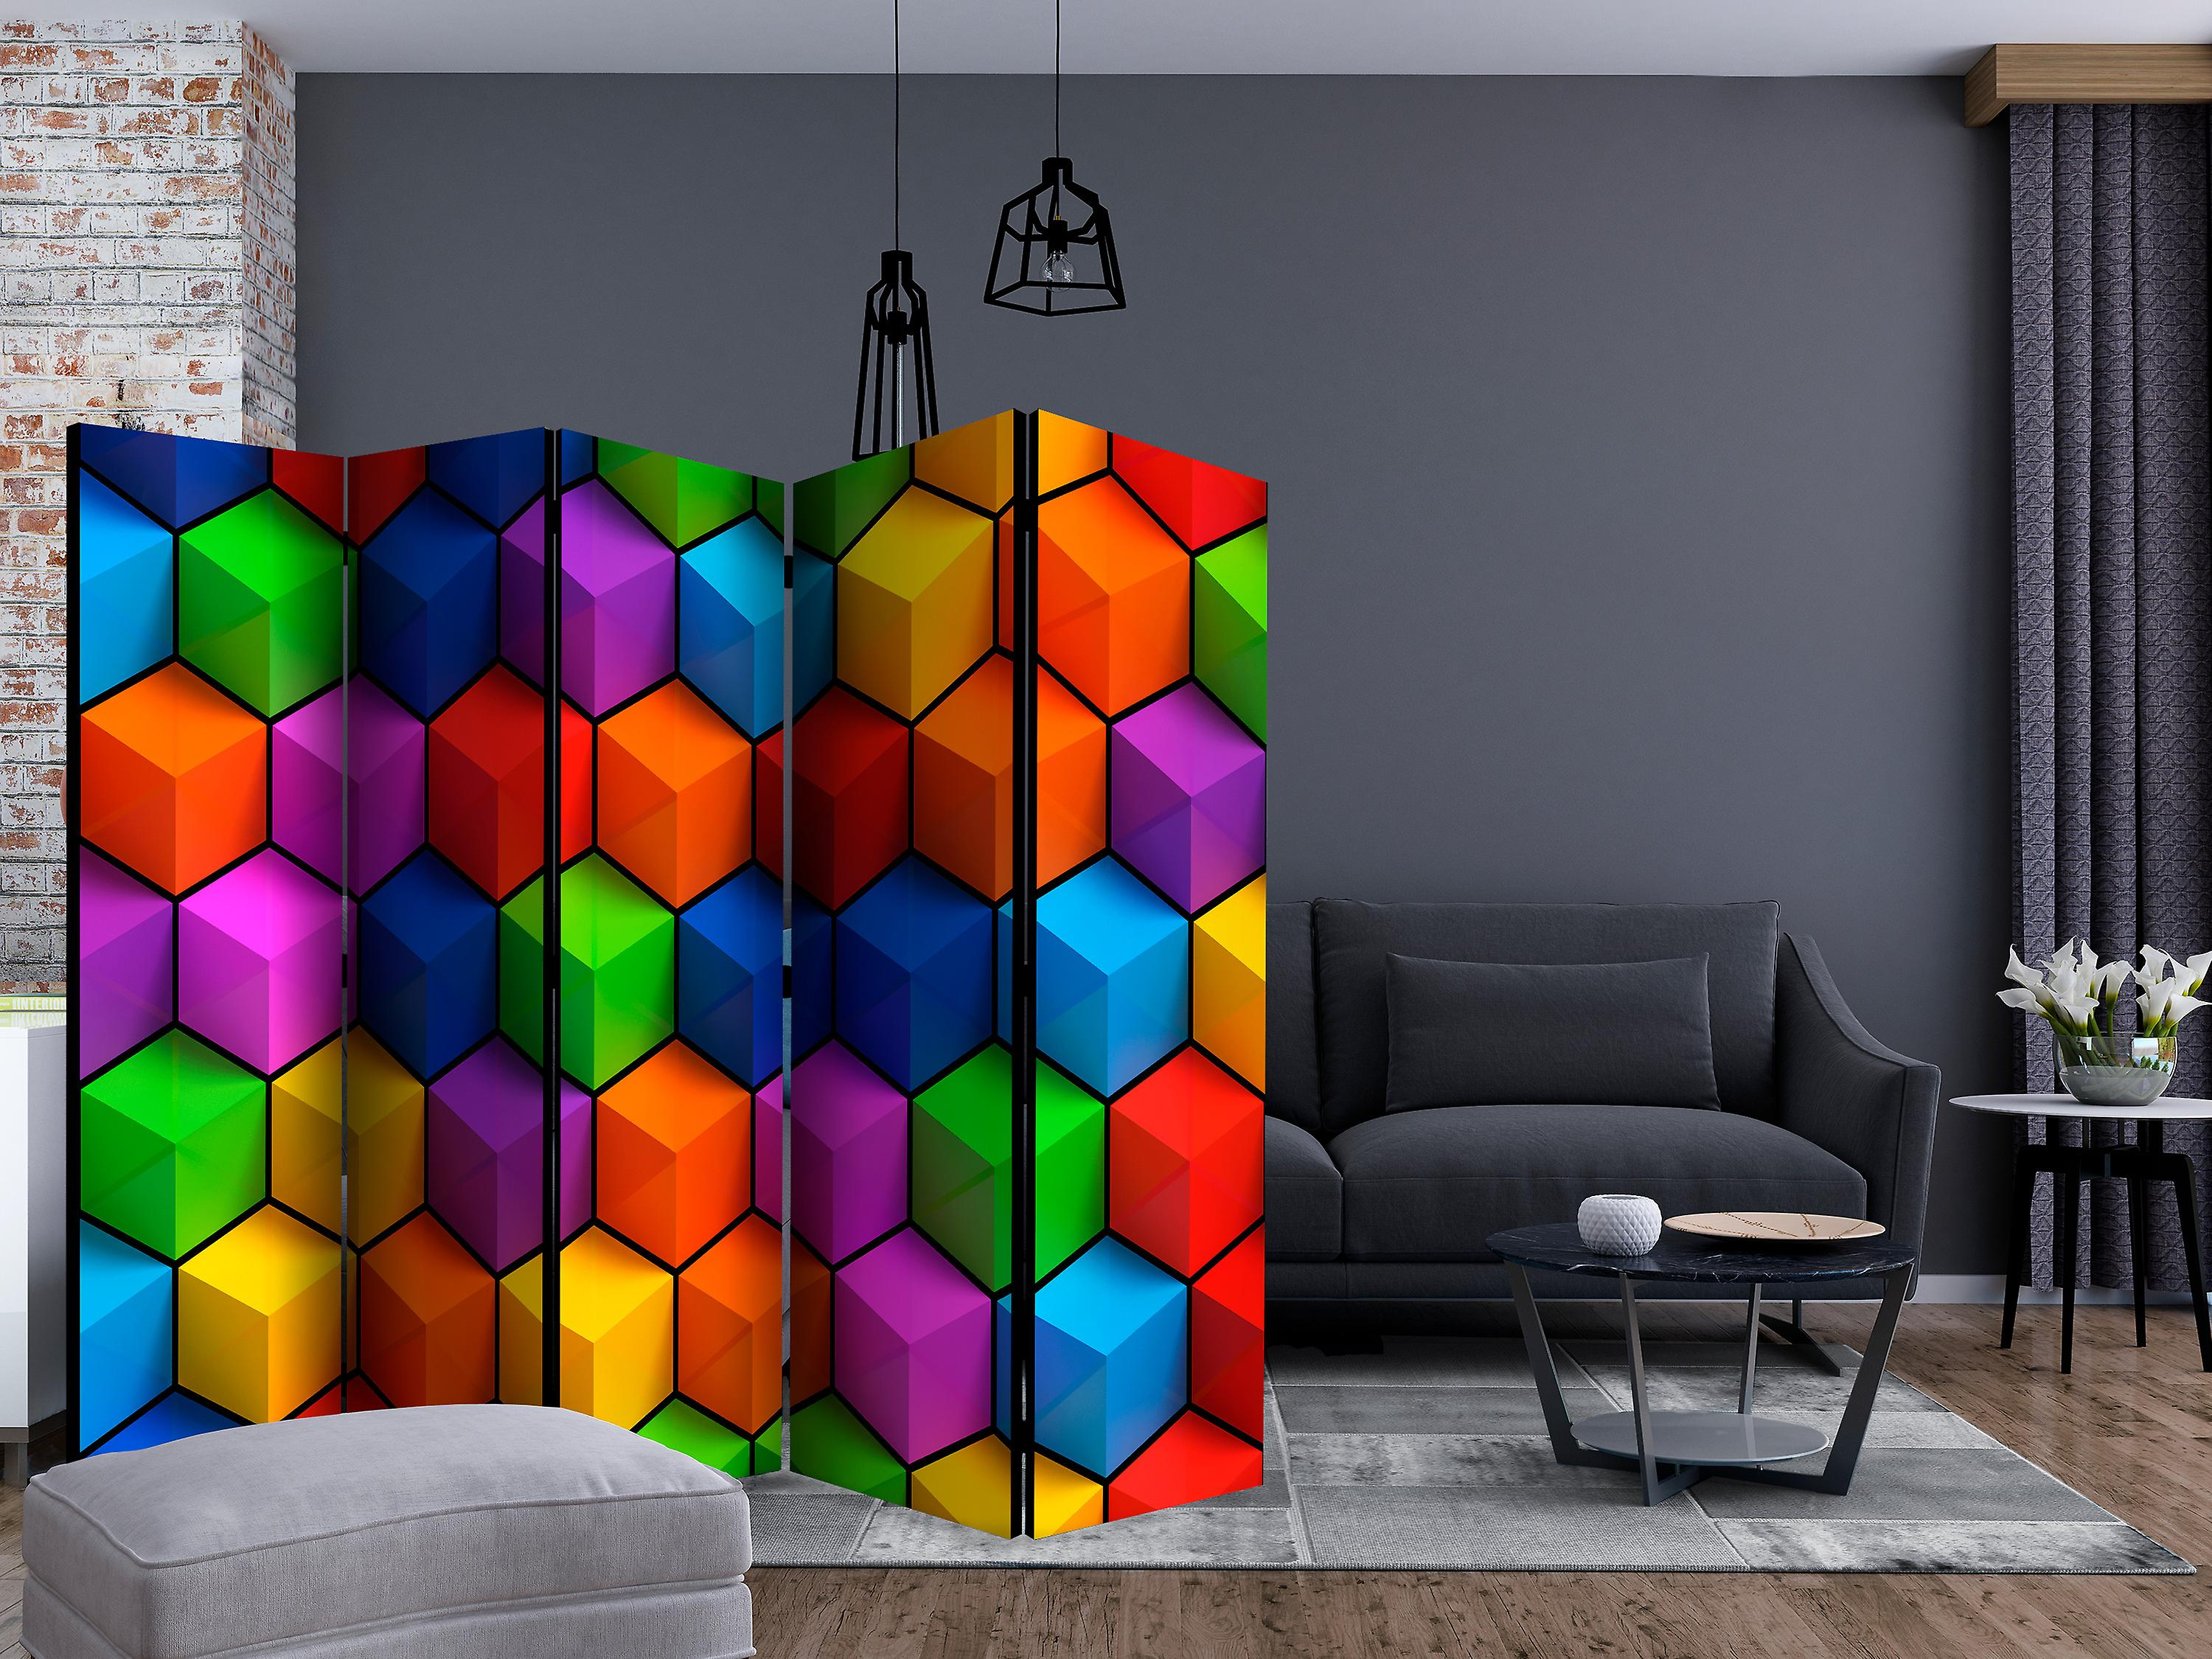 Paravent 5 volets - Colorful Geometric Boxes [Room Dividers]